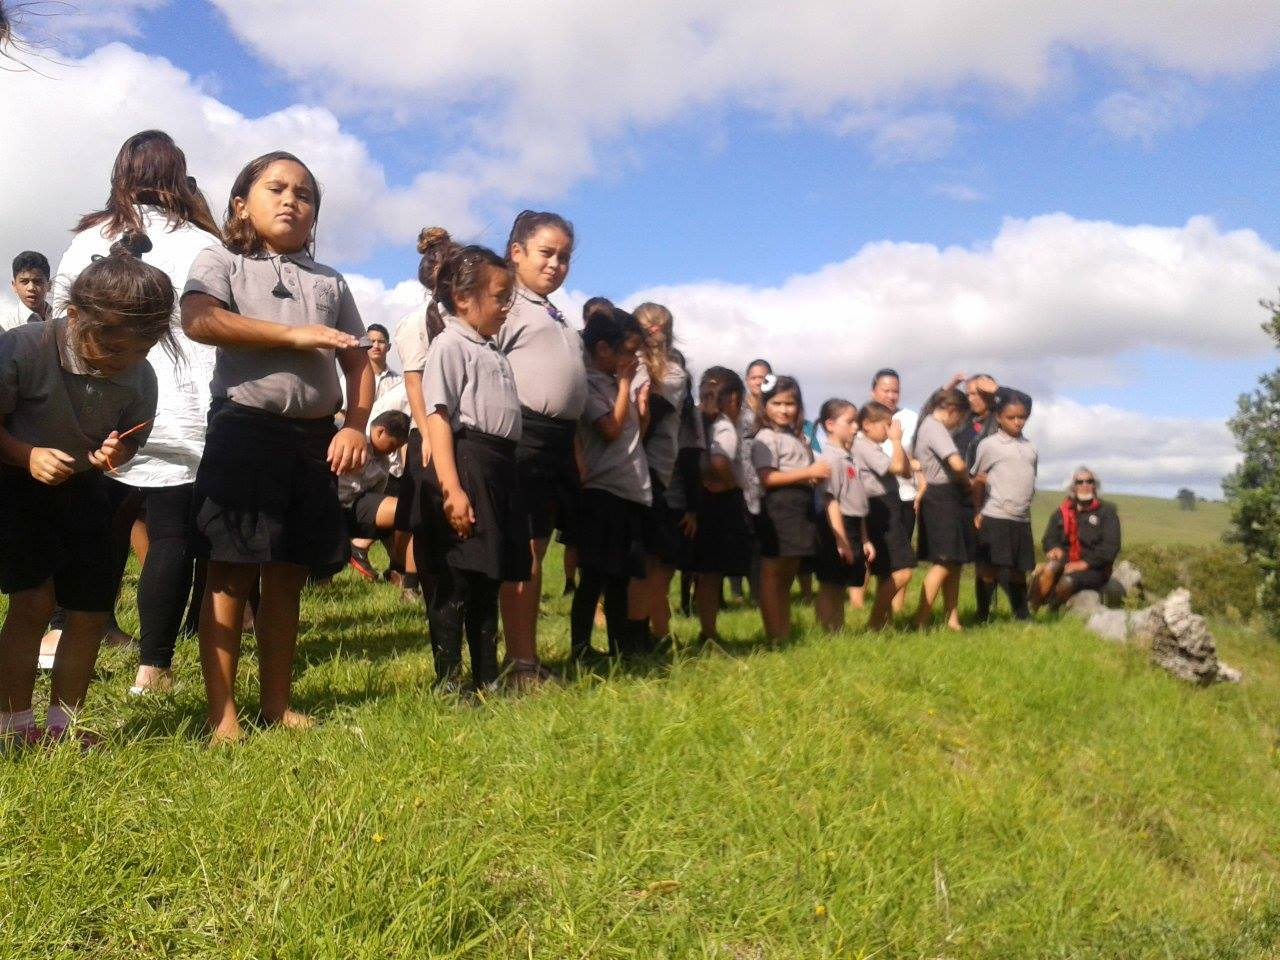 Getting ready to haka powhiri the waka